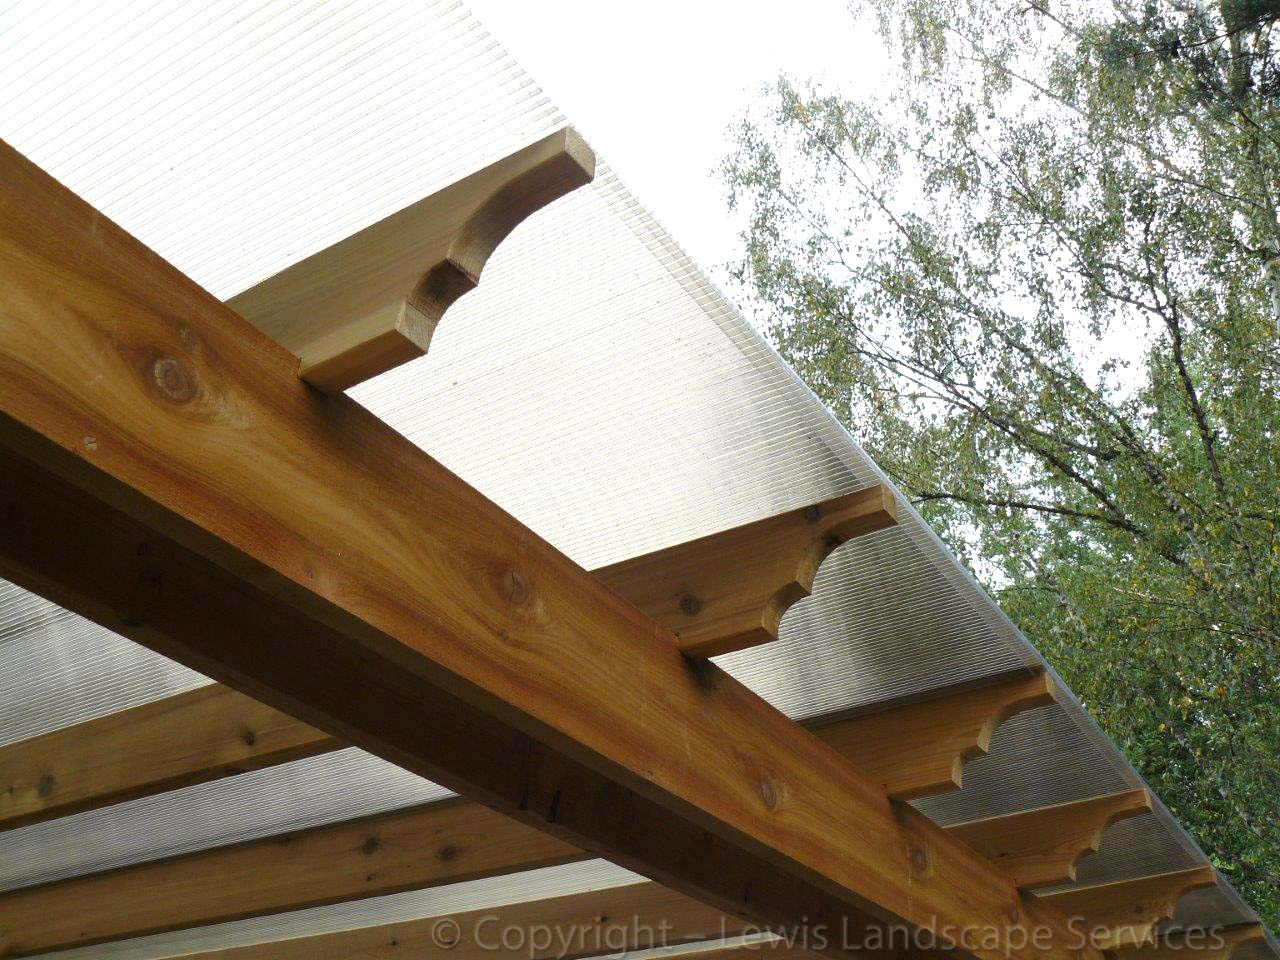 Outdoor-covered-structures-various-options-pergola-with-polycarbonate-roof 000